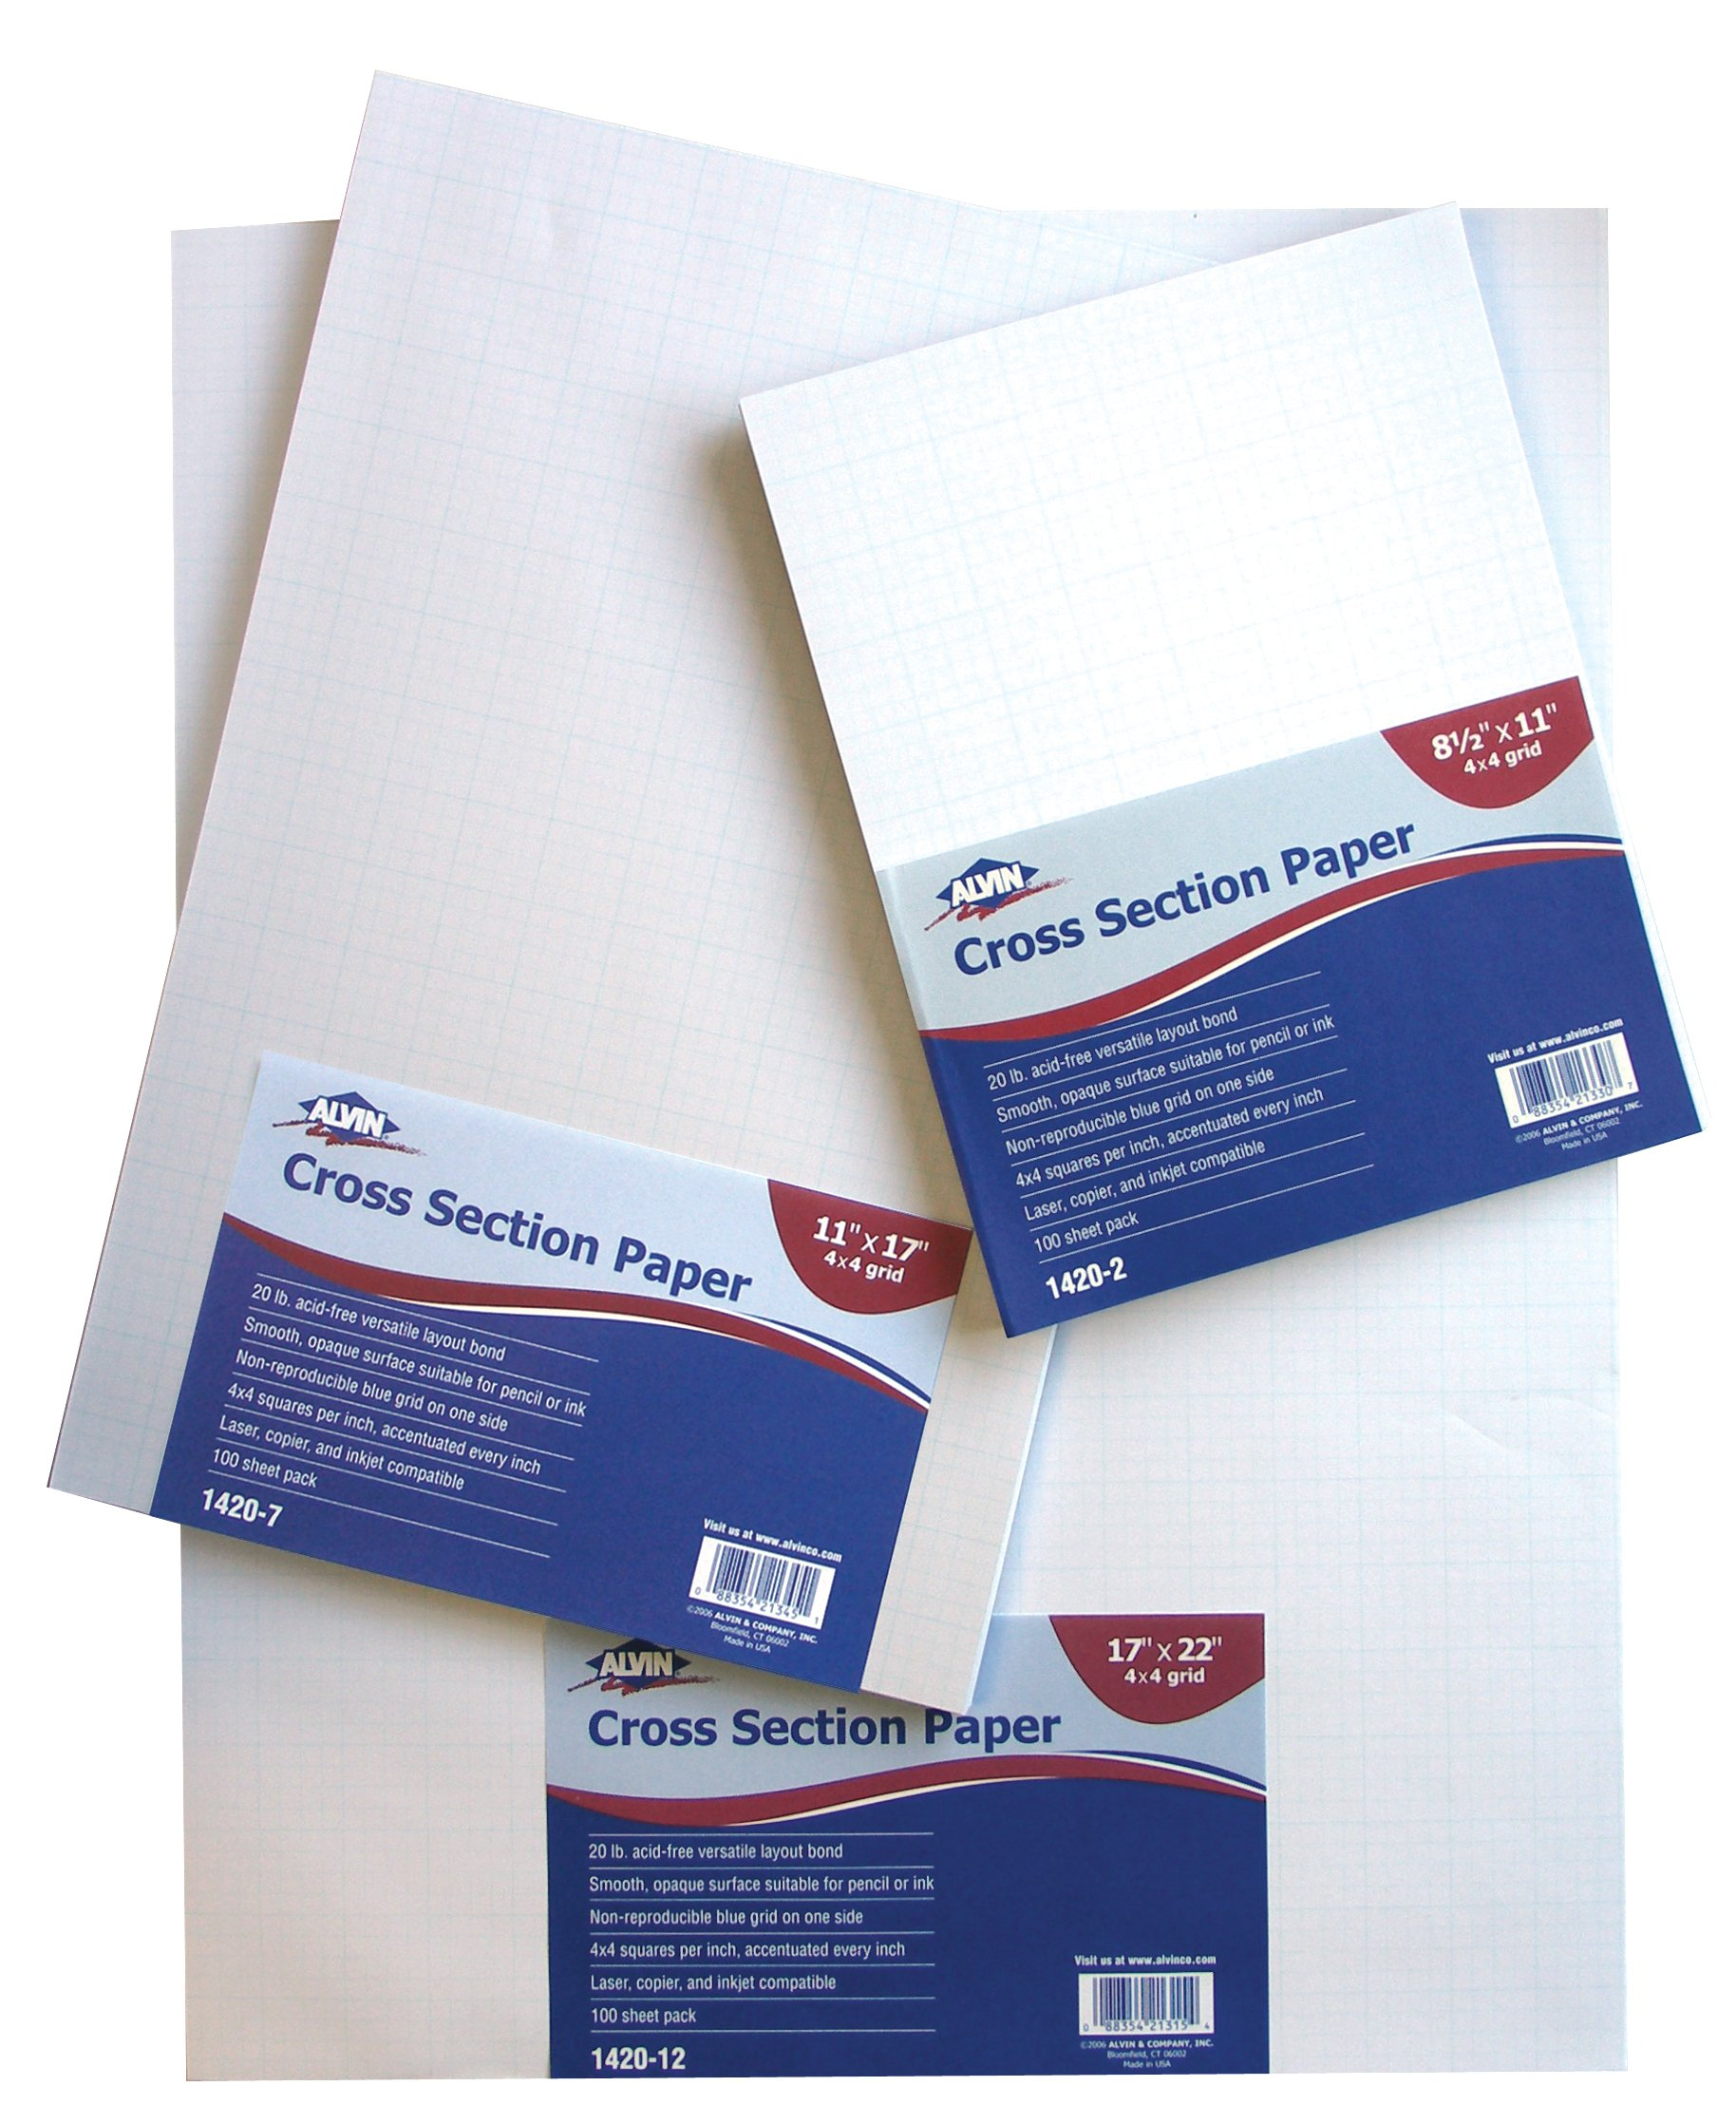 Alvin Cross Section Paper 4x4 Grid 100-Sheet Pack 11 inches x 17 inches 1420-7 by Alvin